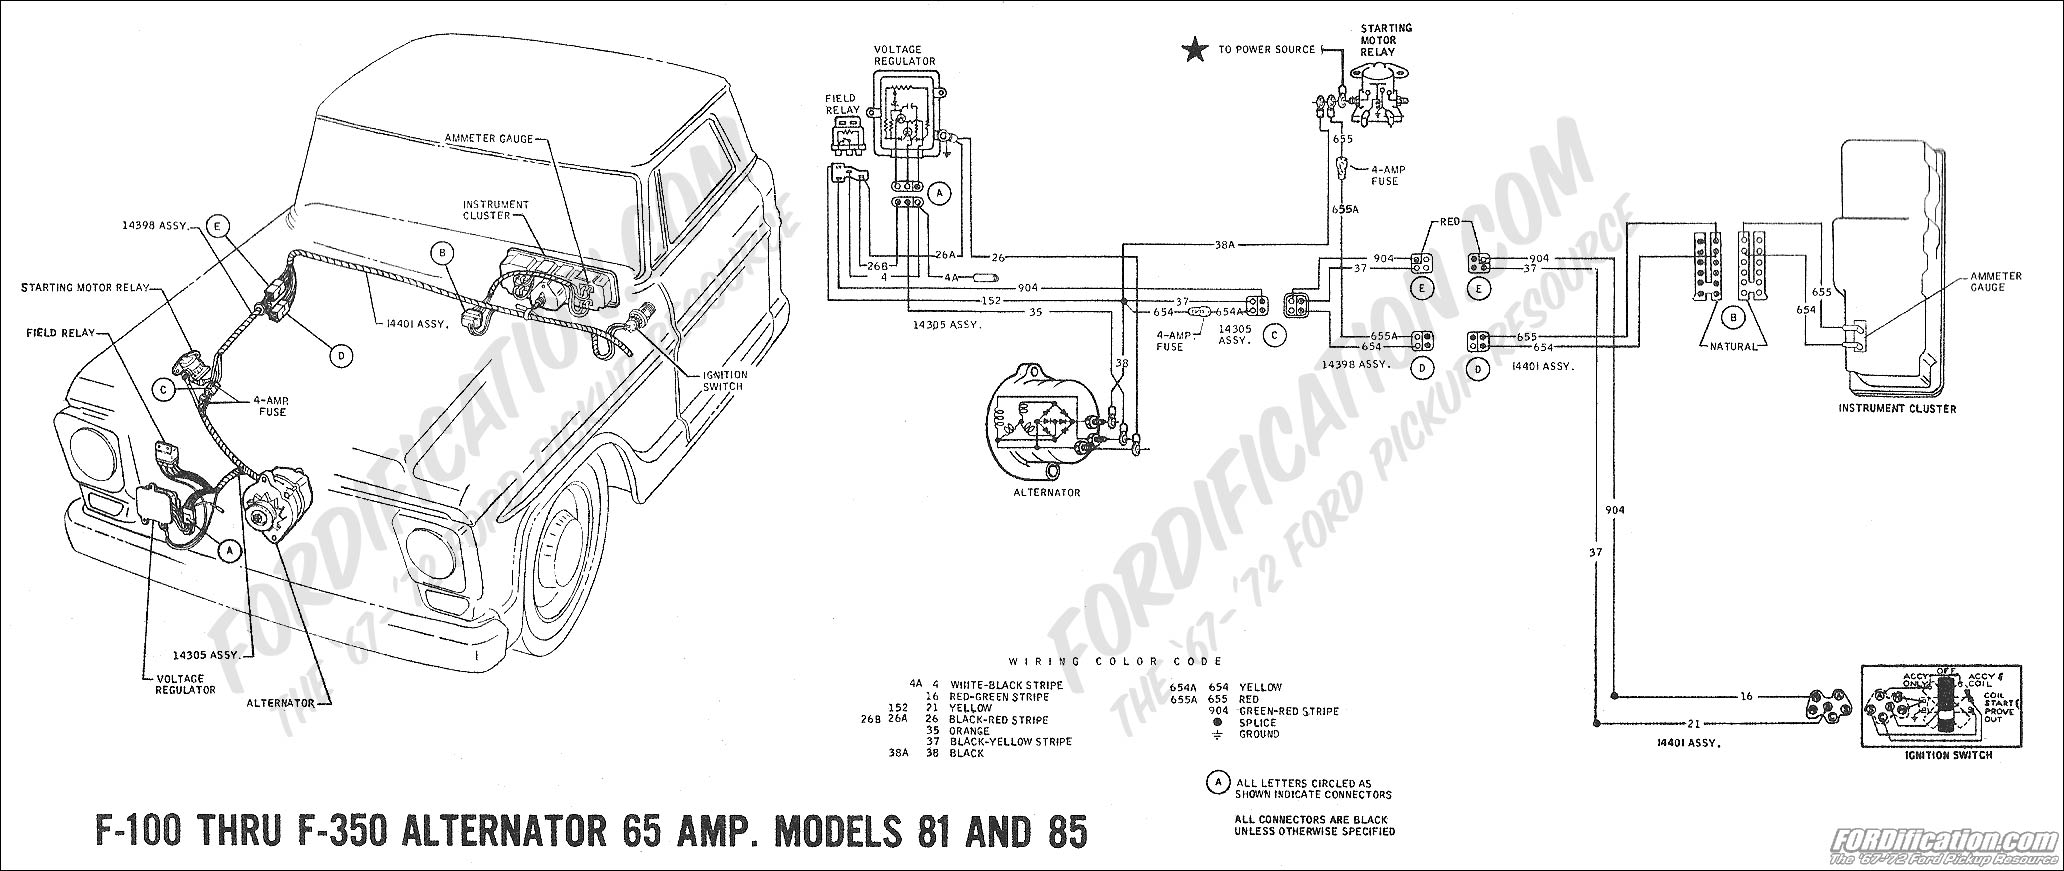 amp gauge wiring diagram help needed alternator wiring with amp